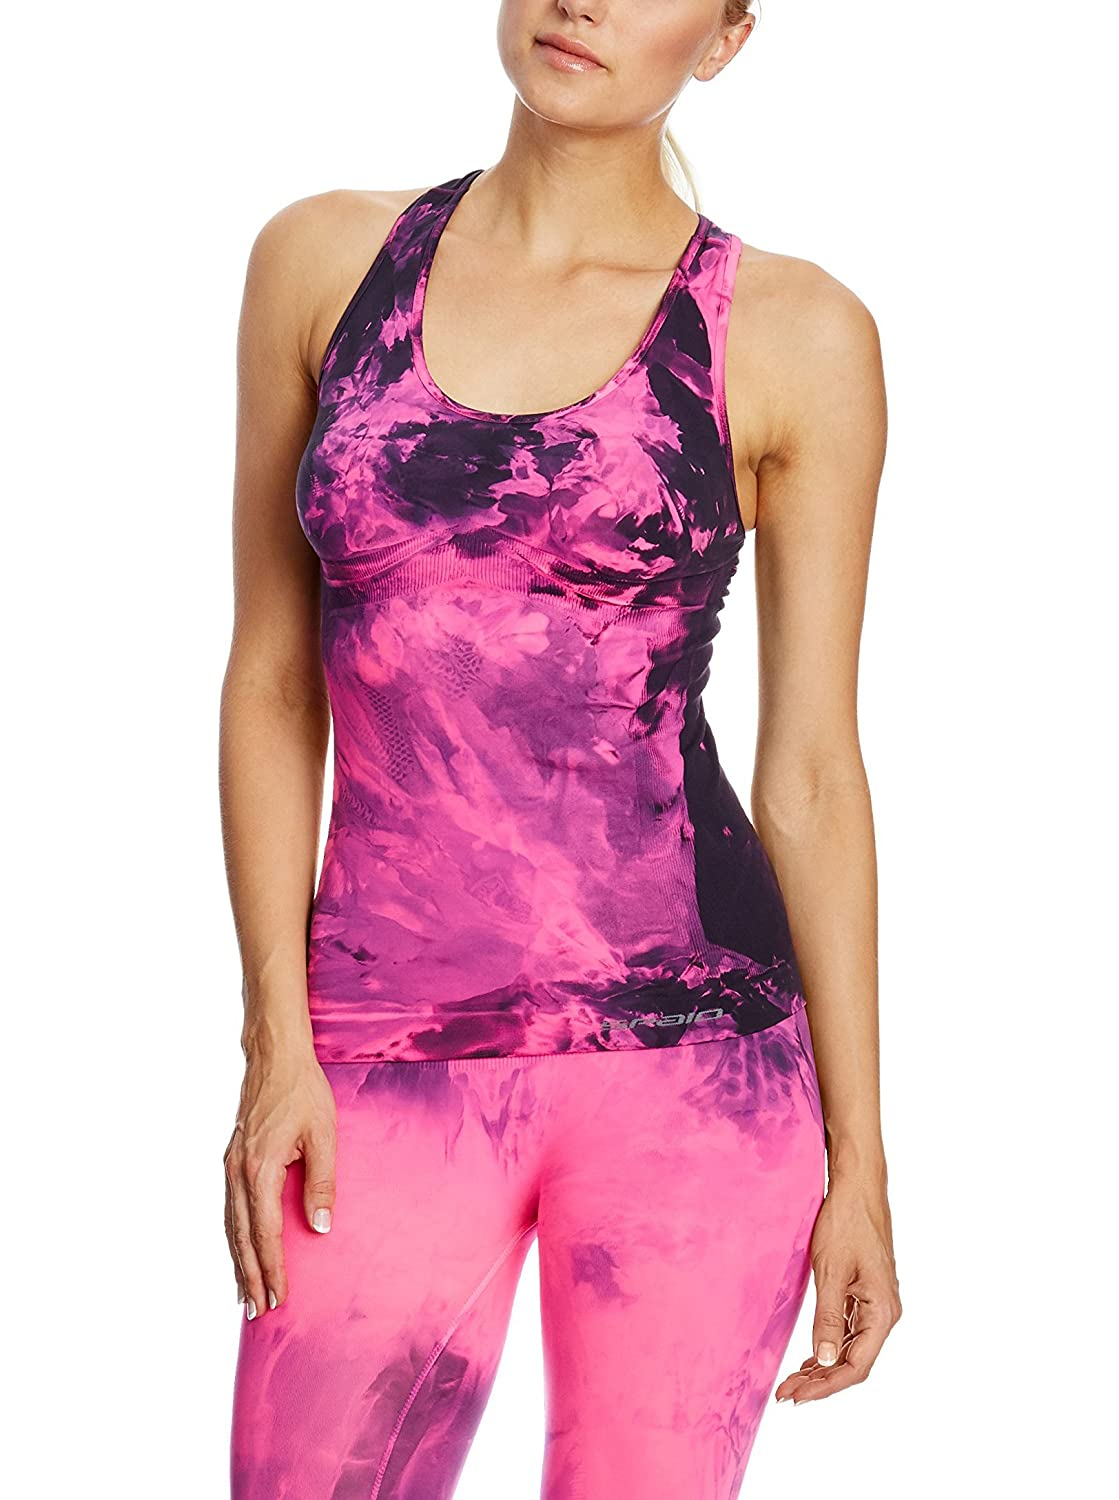 SPAIO ® Fintess Camiseta Top de Mujer, Rosa Fluorescente, L/XL